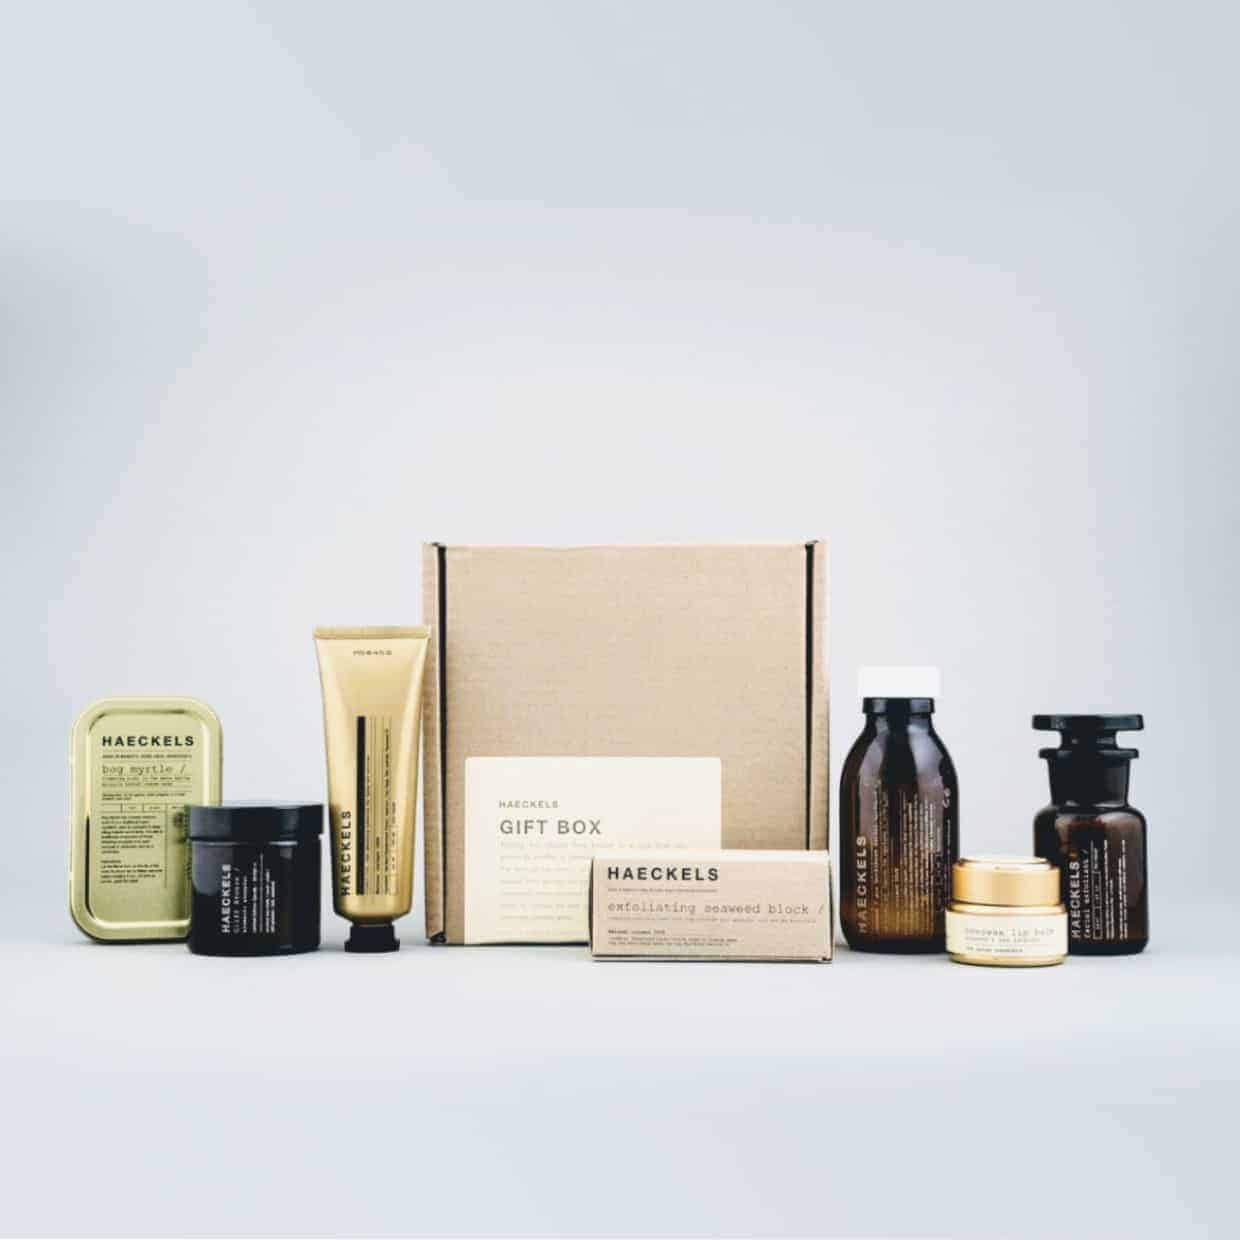 Haeckels Seasonal 1240x1240 - British made luxury handcrafted unique gifts for her